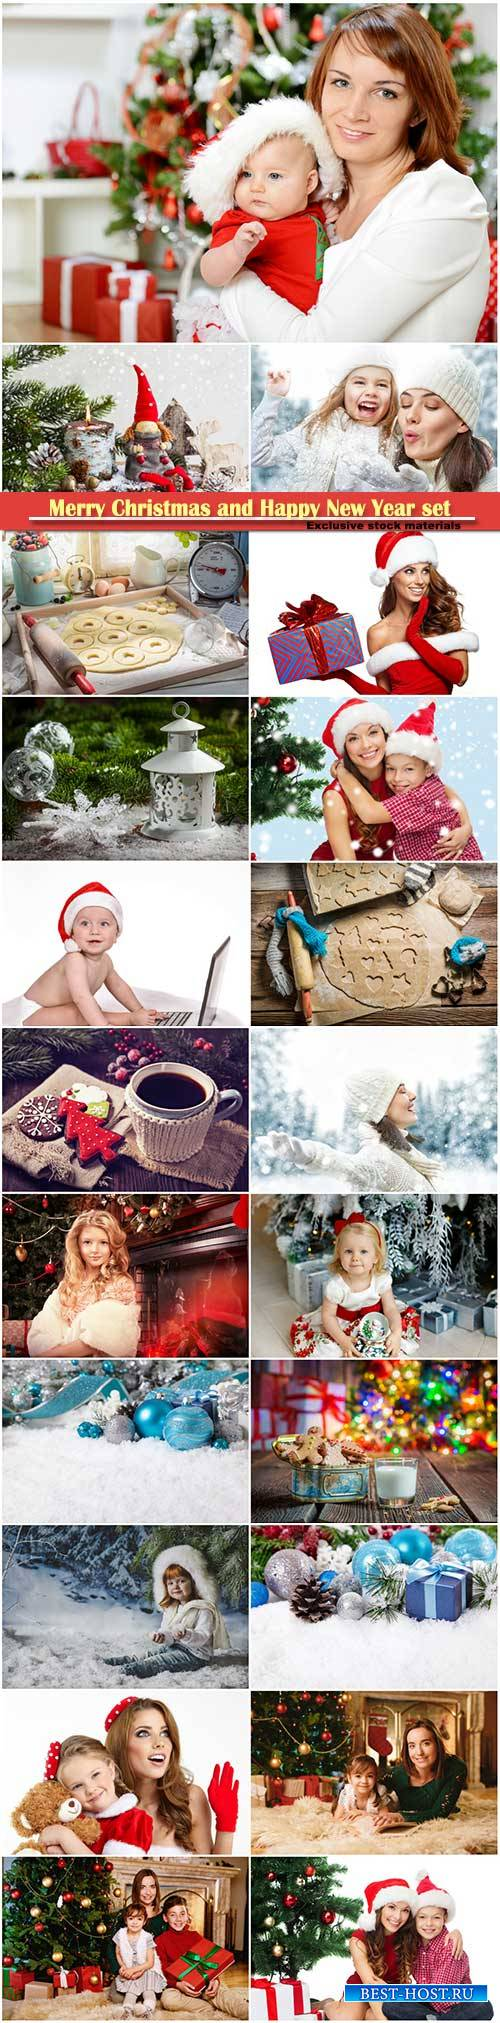 Merry Christmas and Happy New Year stock set # 2